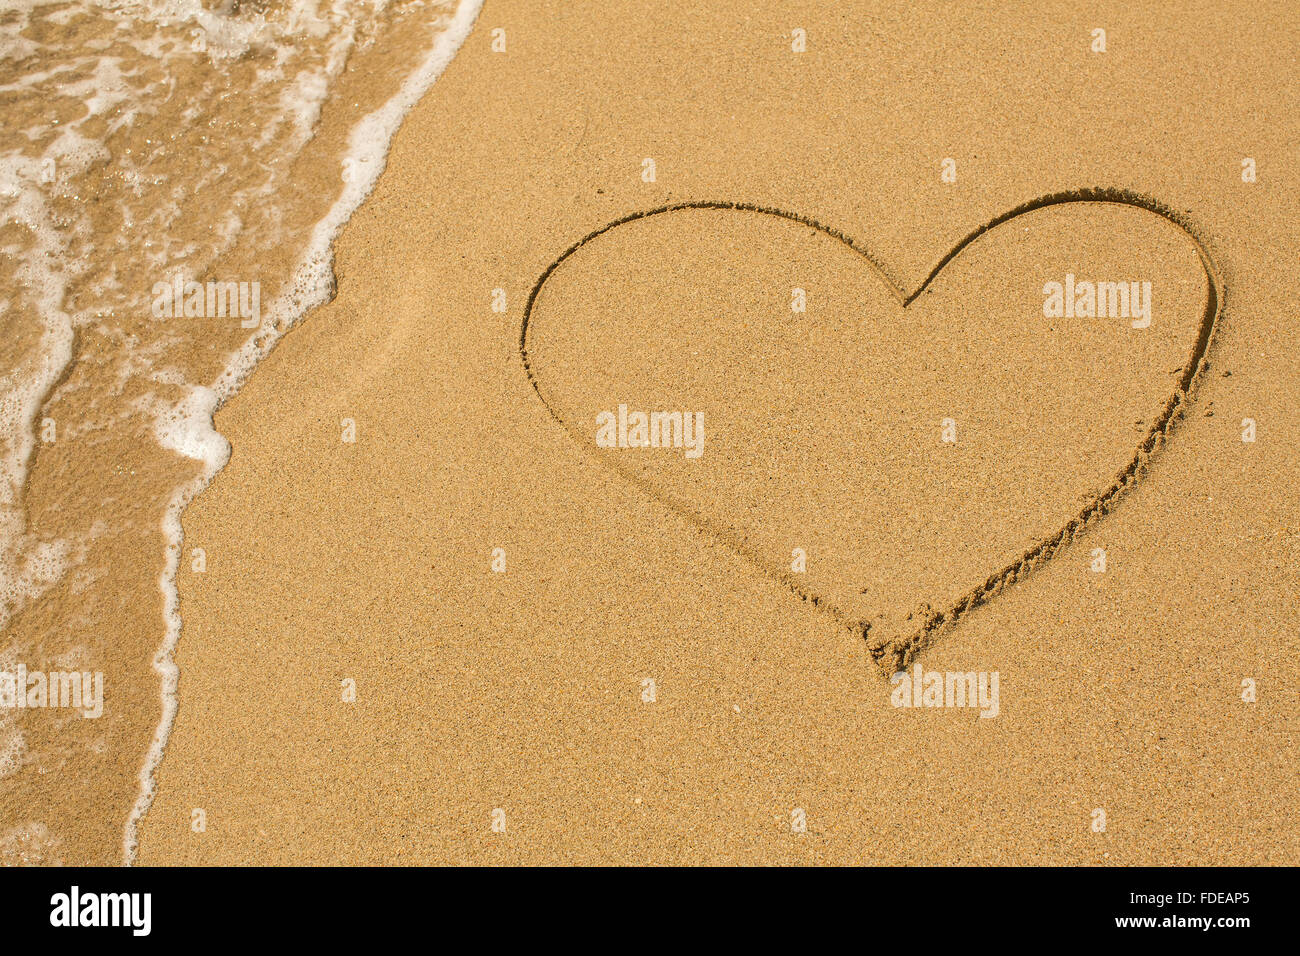 Heart drawn on the beach sand with a soft wave. - Stock Image